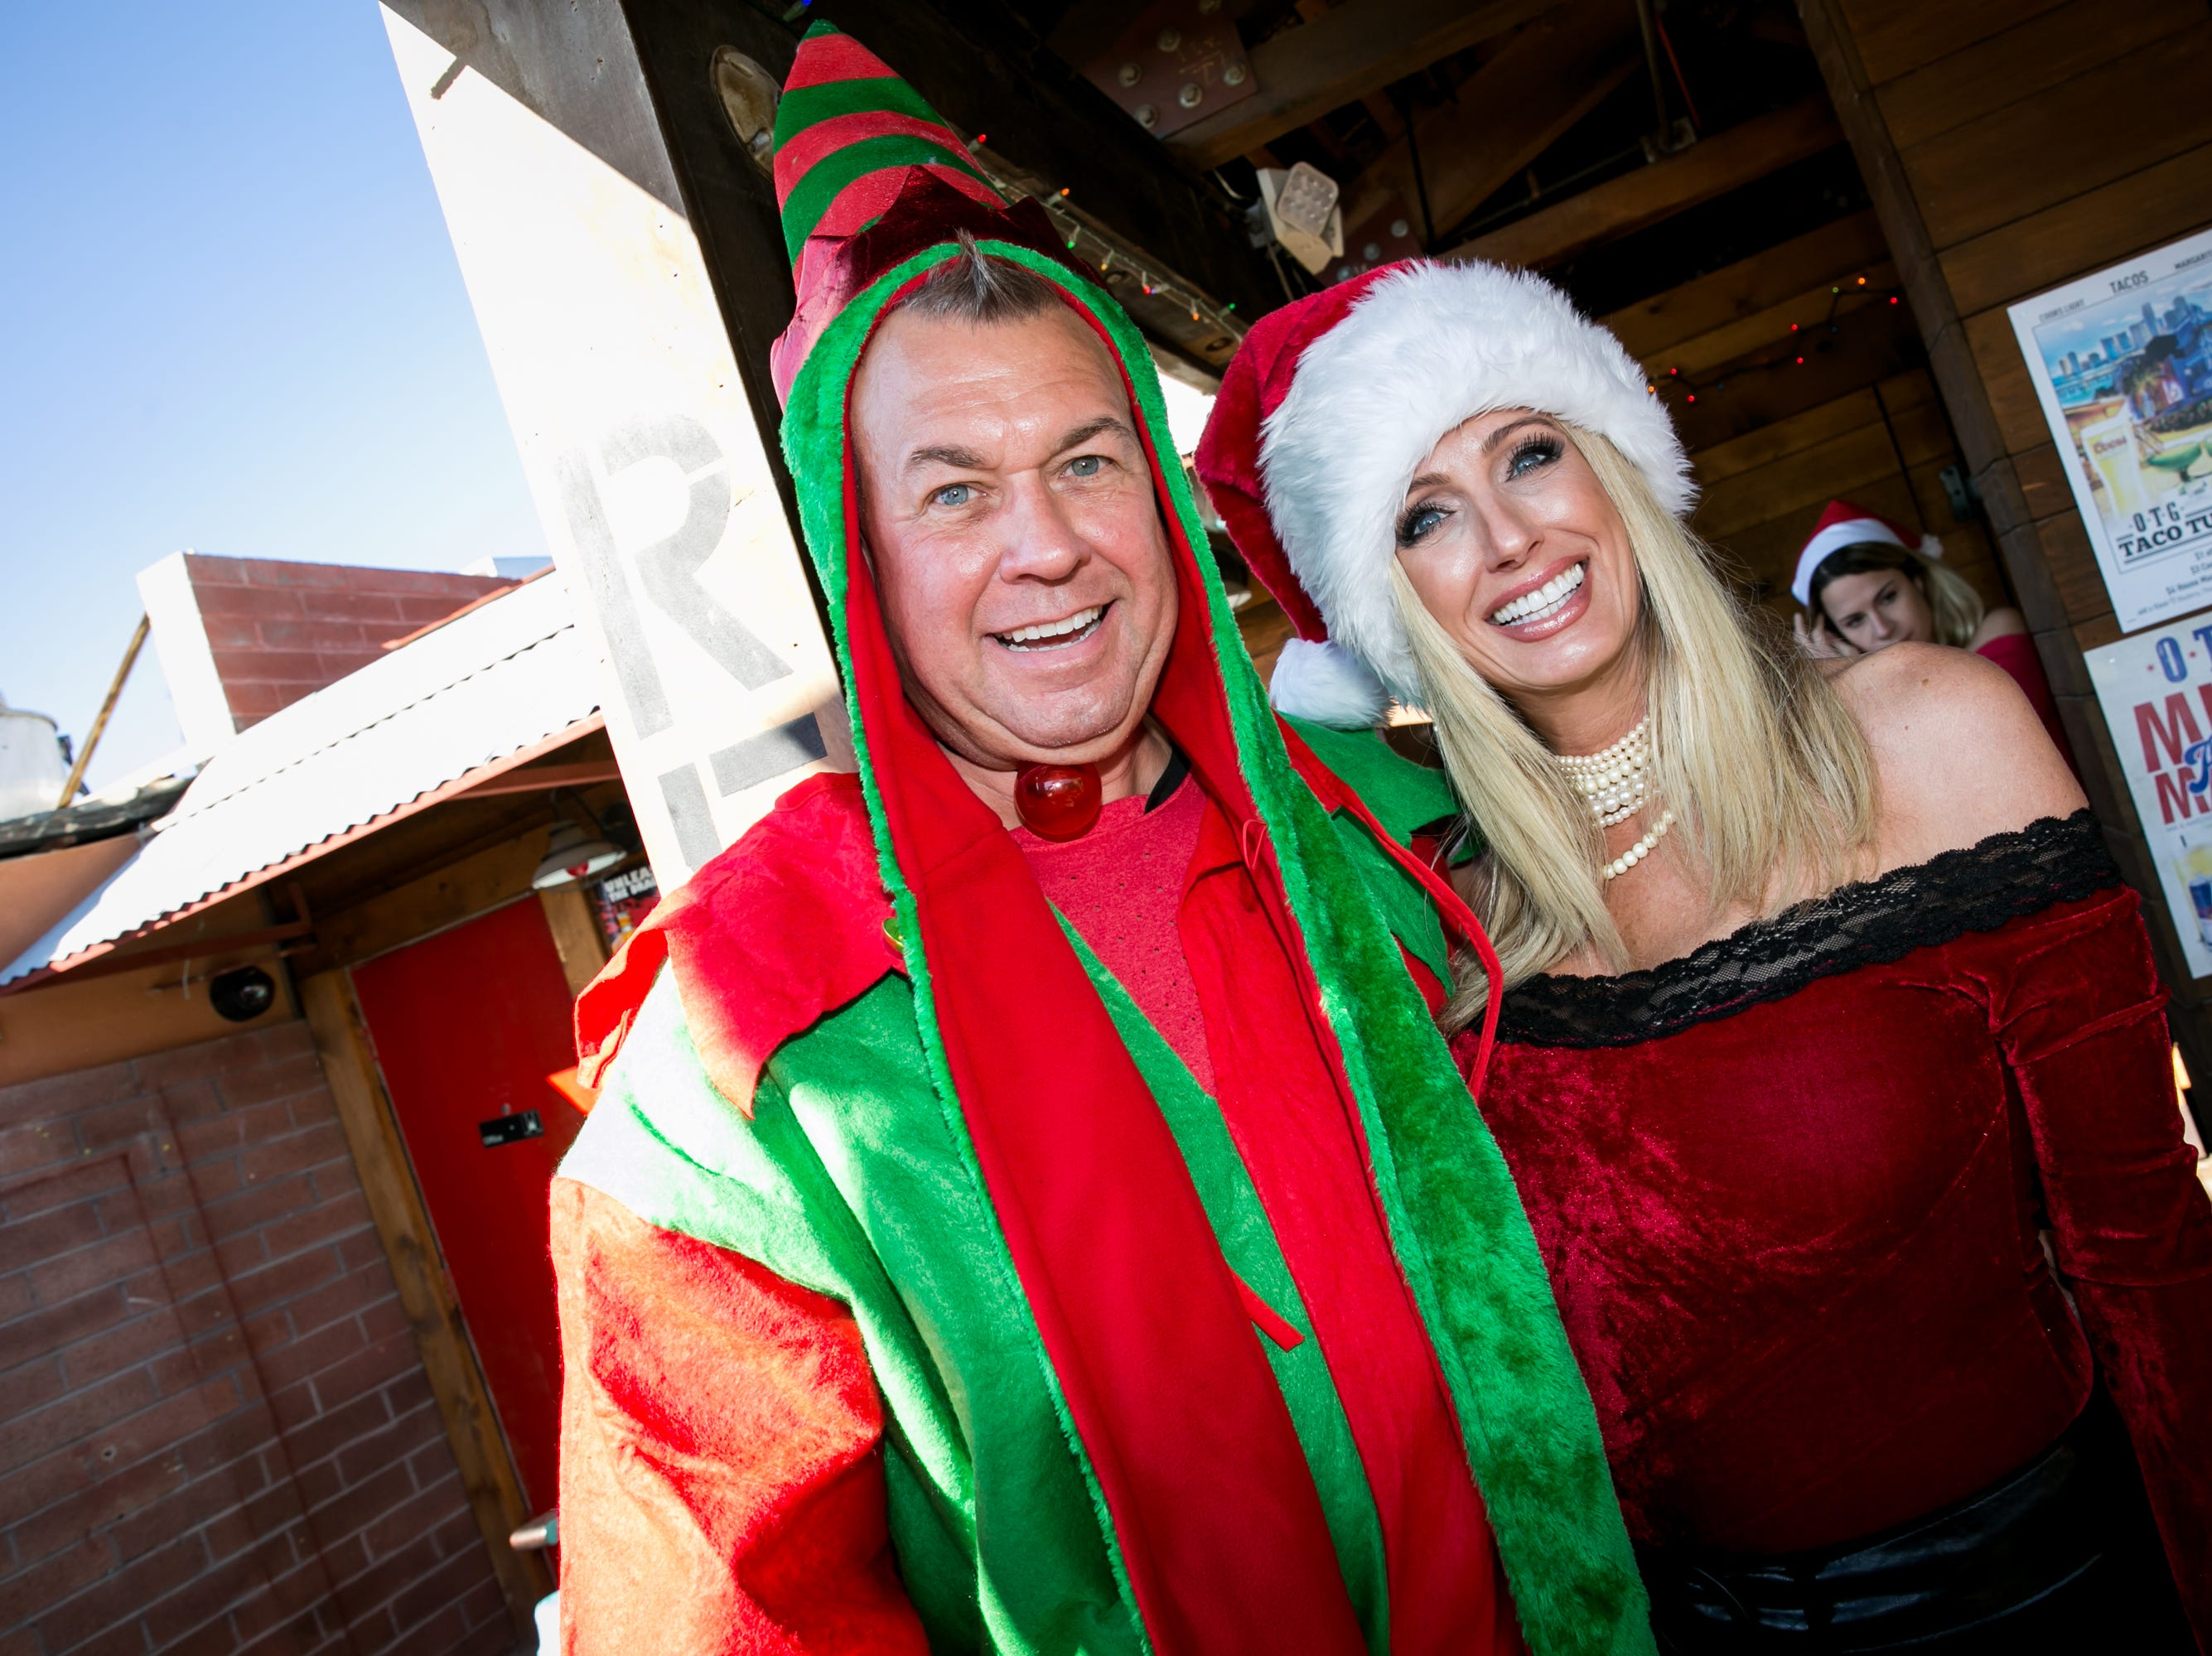 These two had a glorious time during the Scottsdale Santa Crawl at Old Town Gringos on Saturday, December 8, 2018.